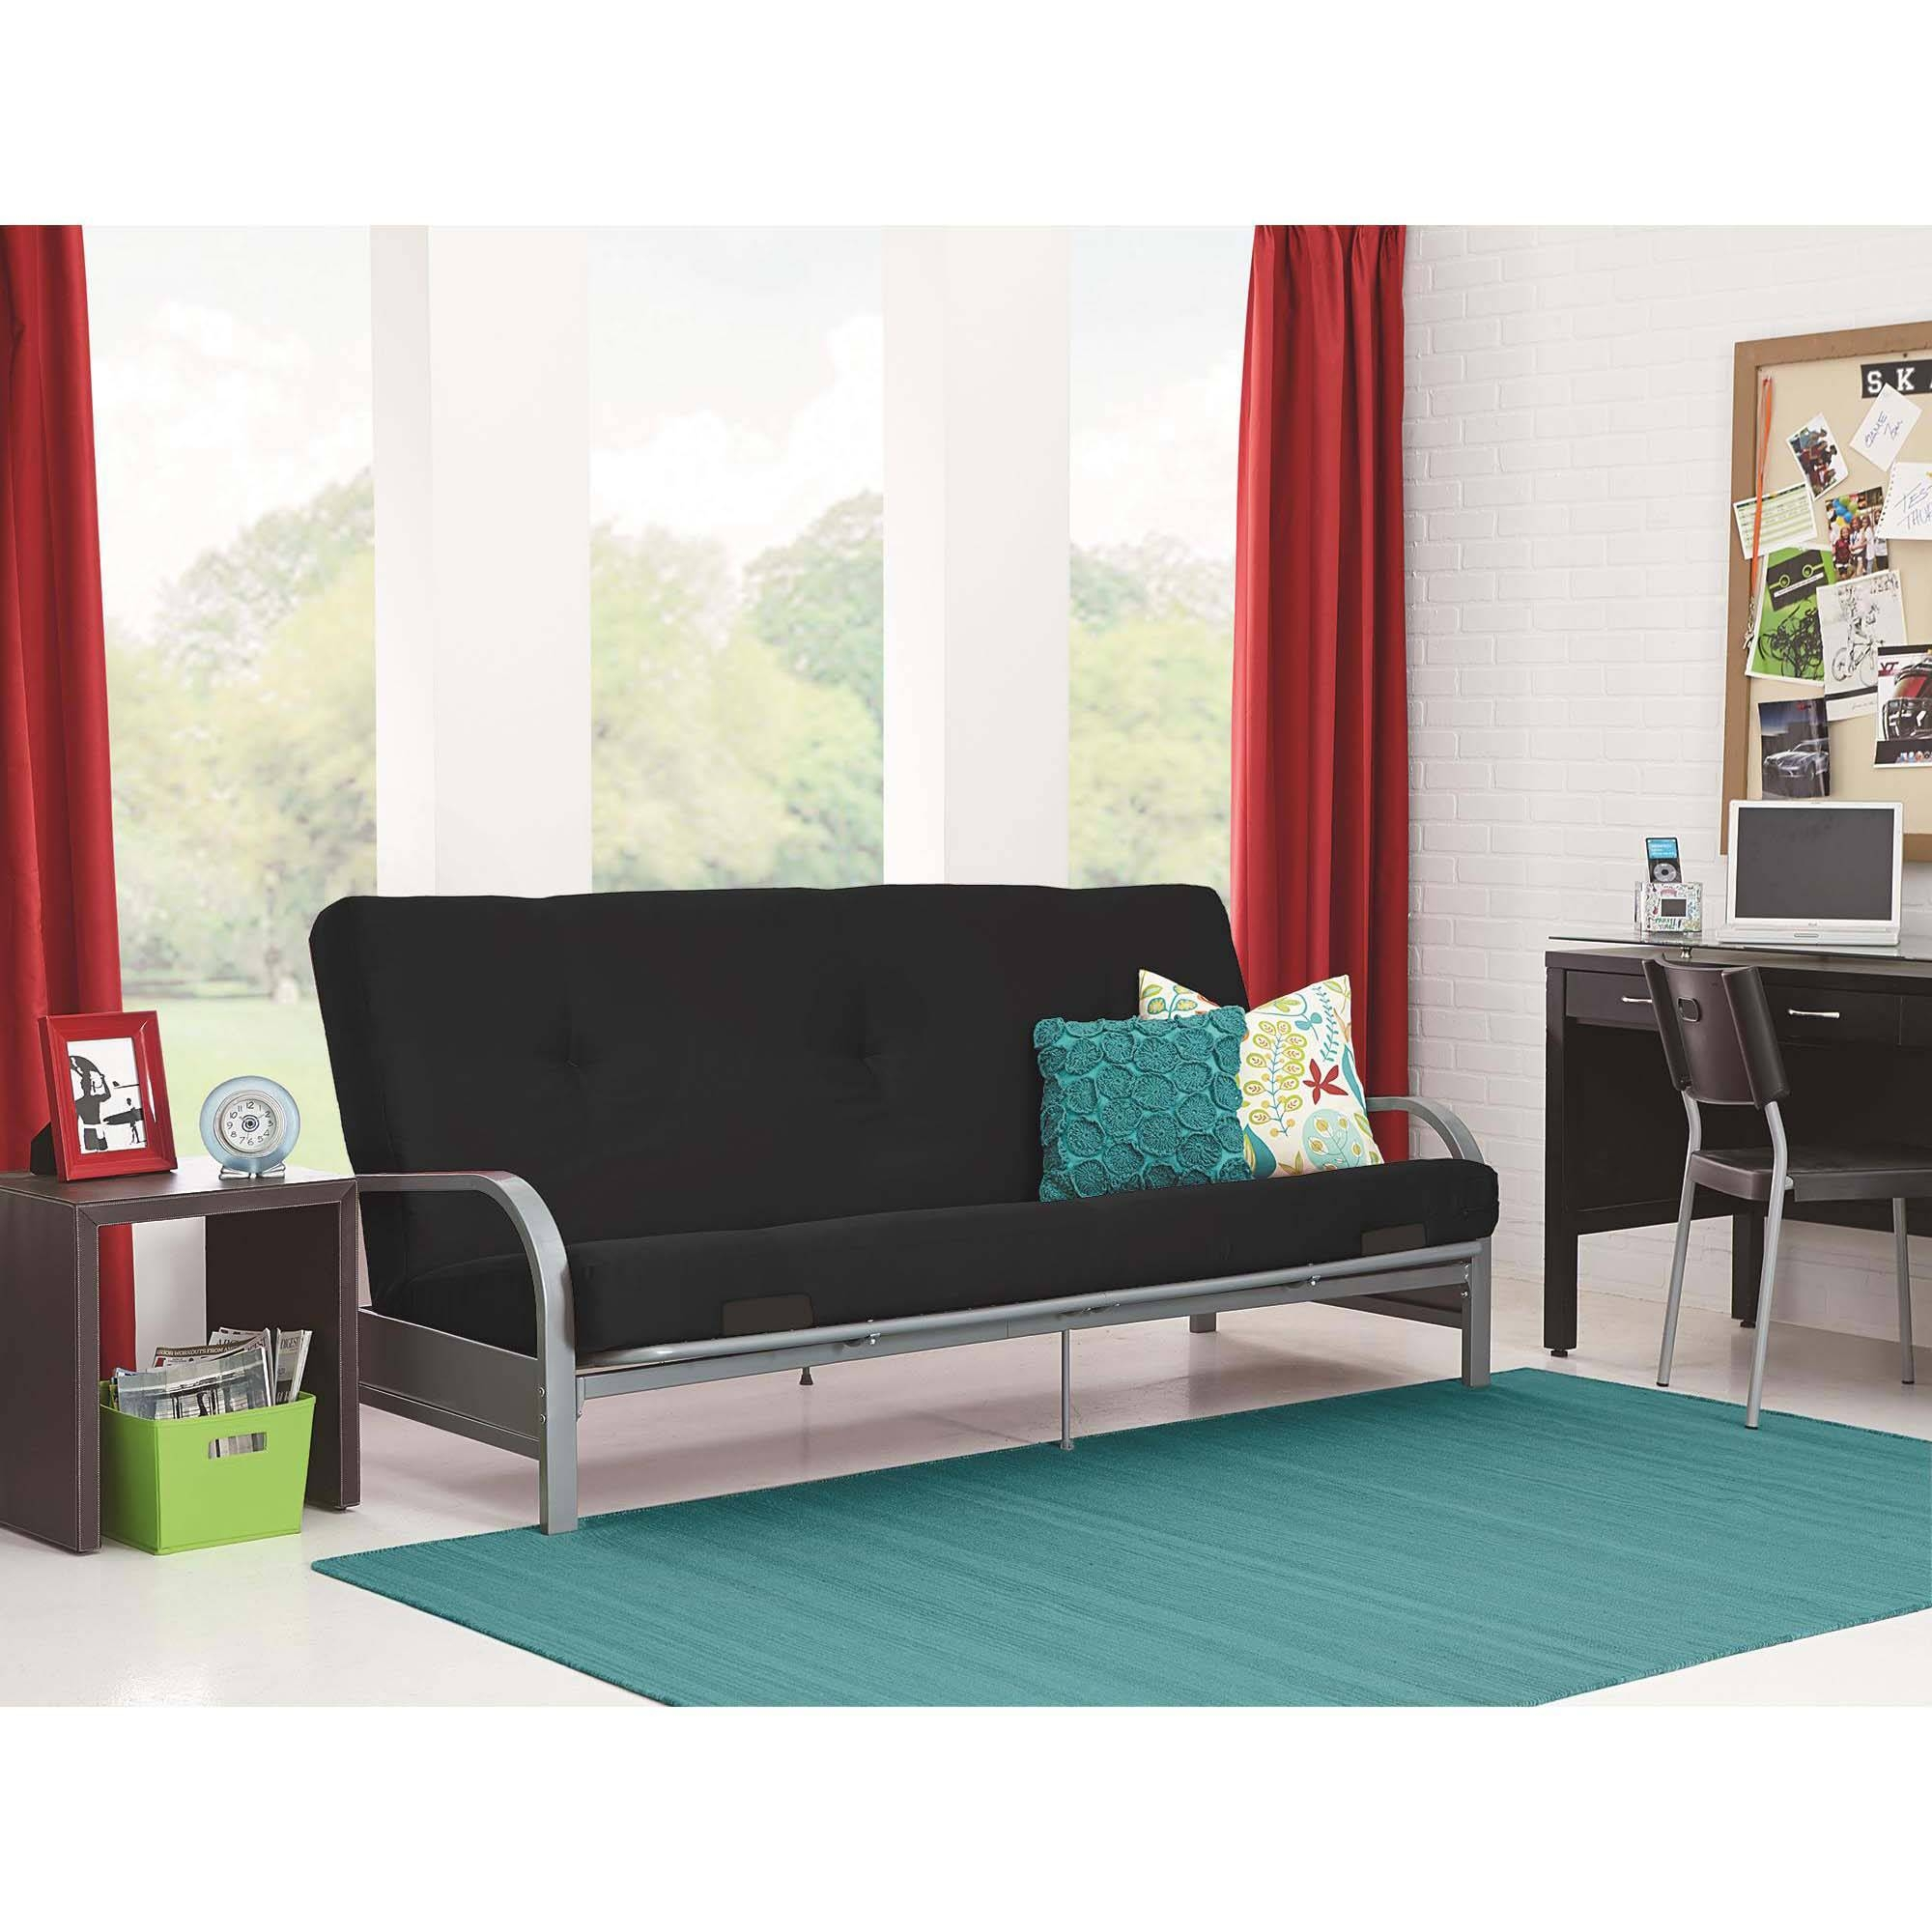 Microfiber Futon Folding Sofa Bed Couch Mattress & Storage within Small Black Futon Sofa Beds (Image 10 of 15)